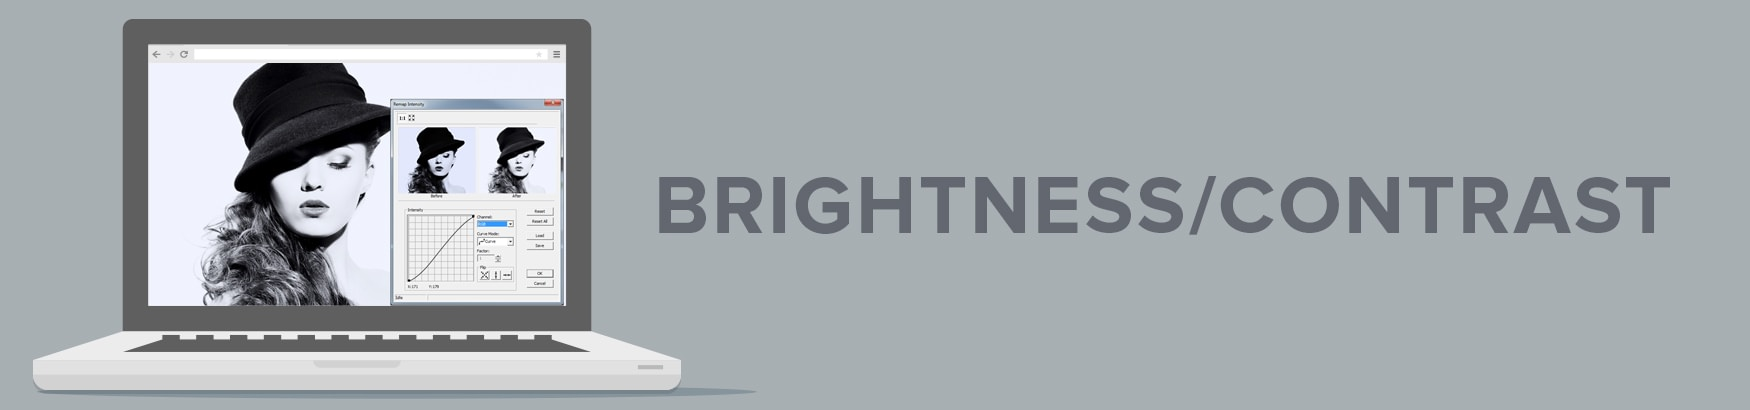 Image Processing: Brightness and Contrast